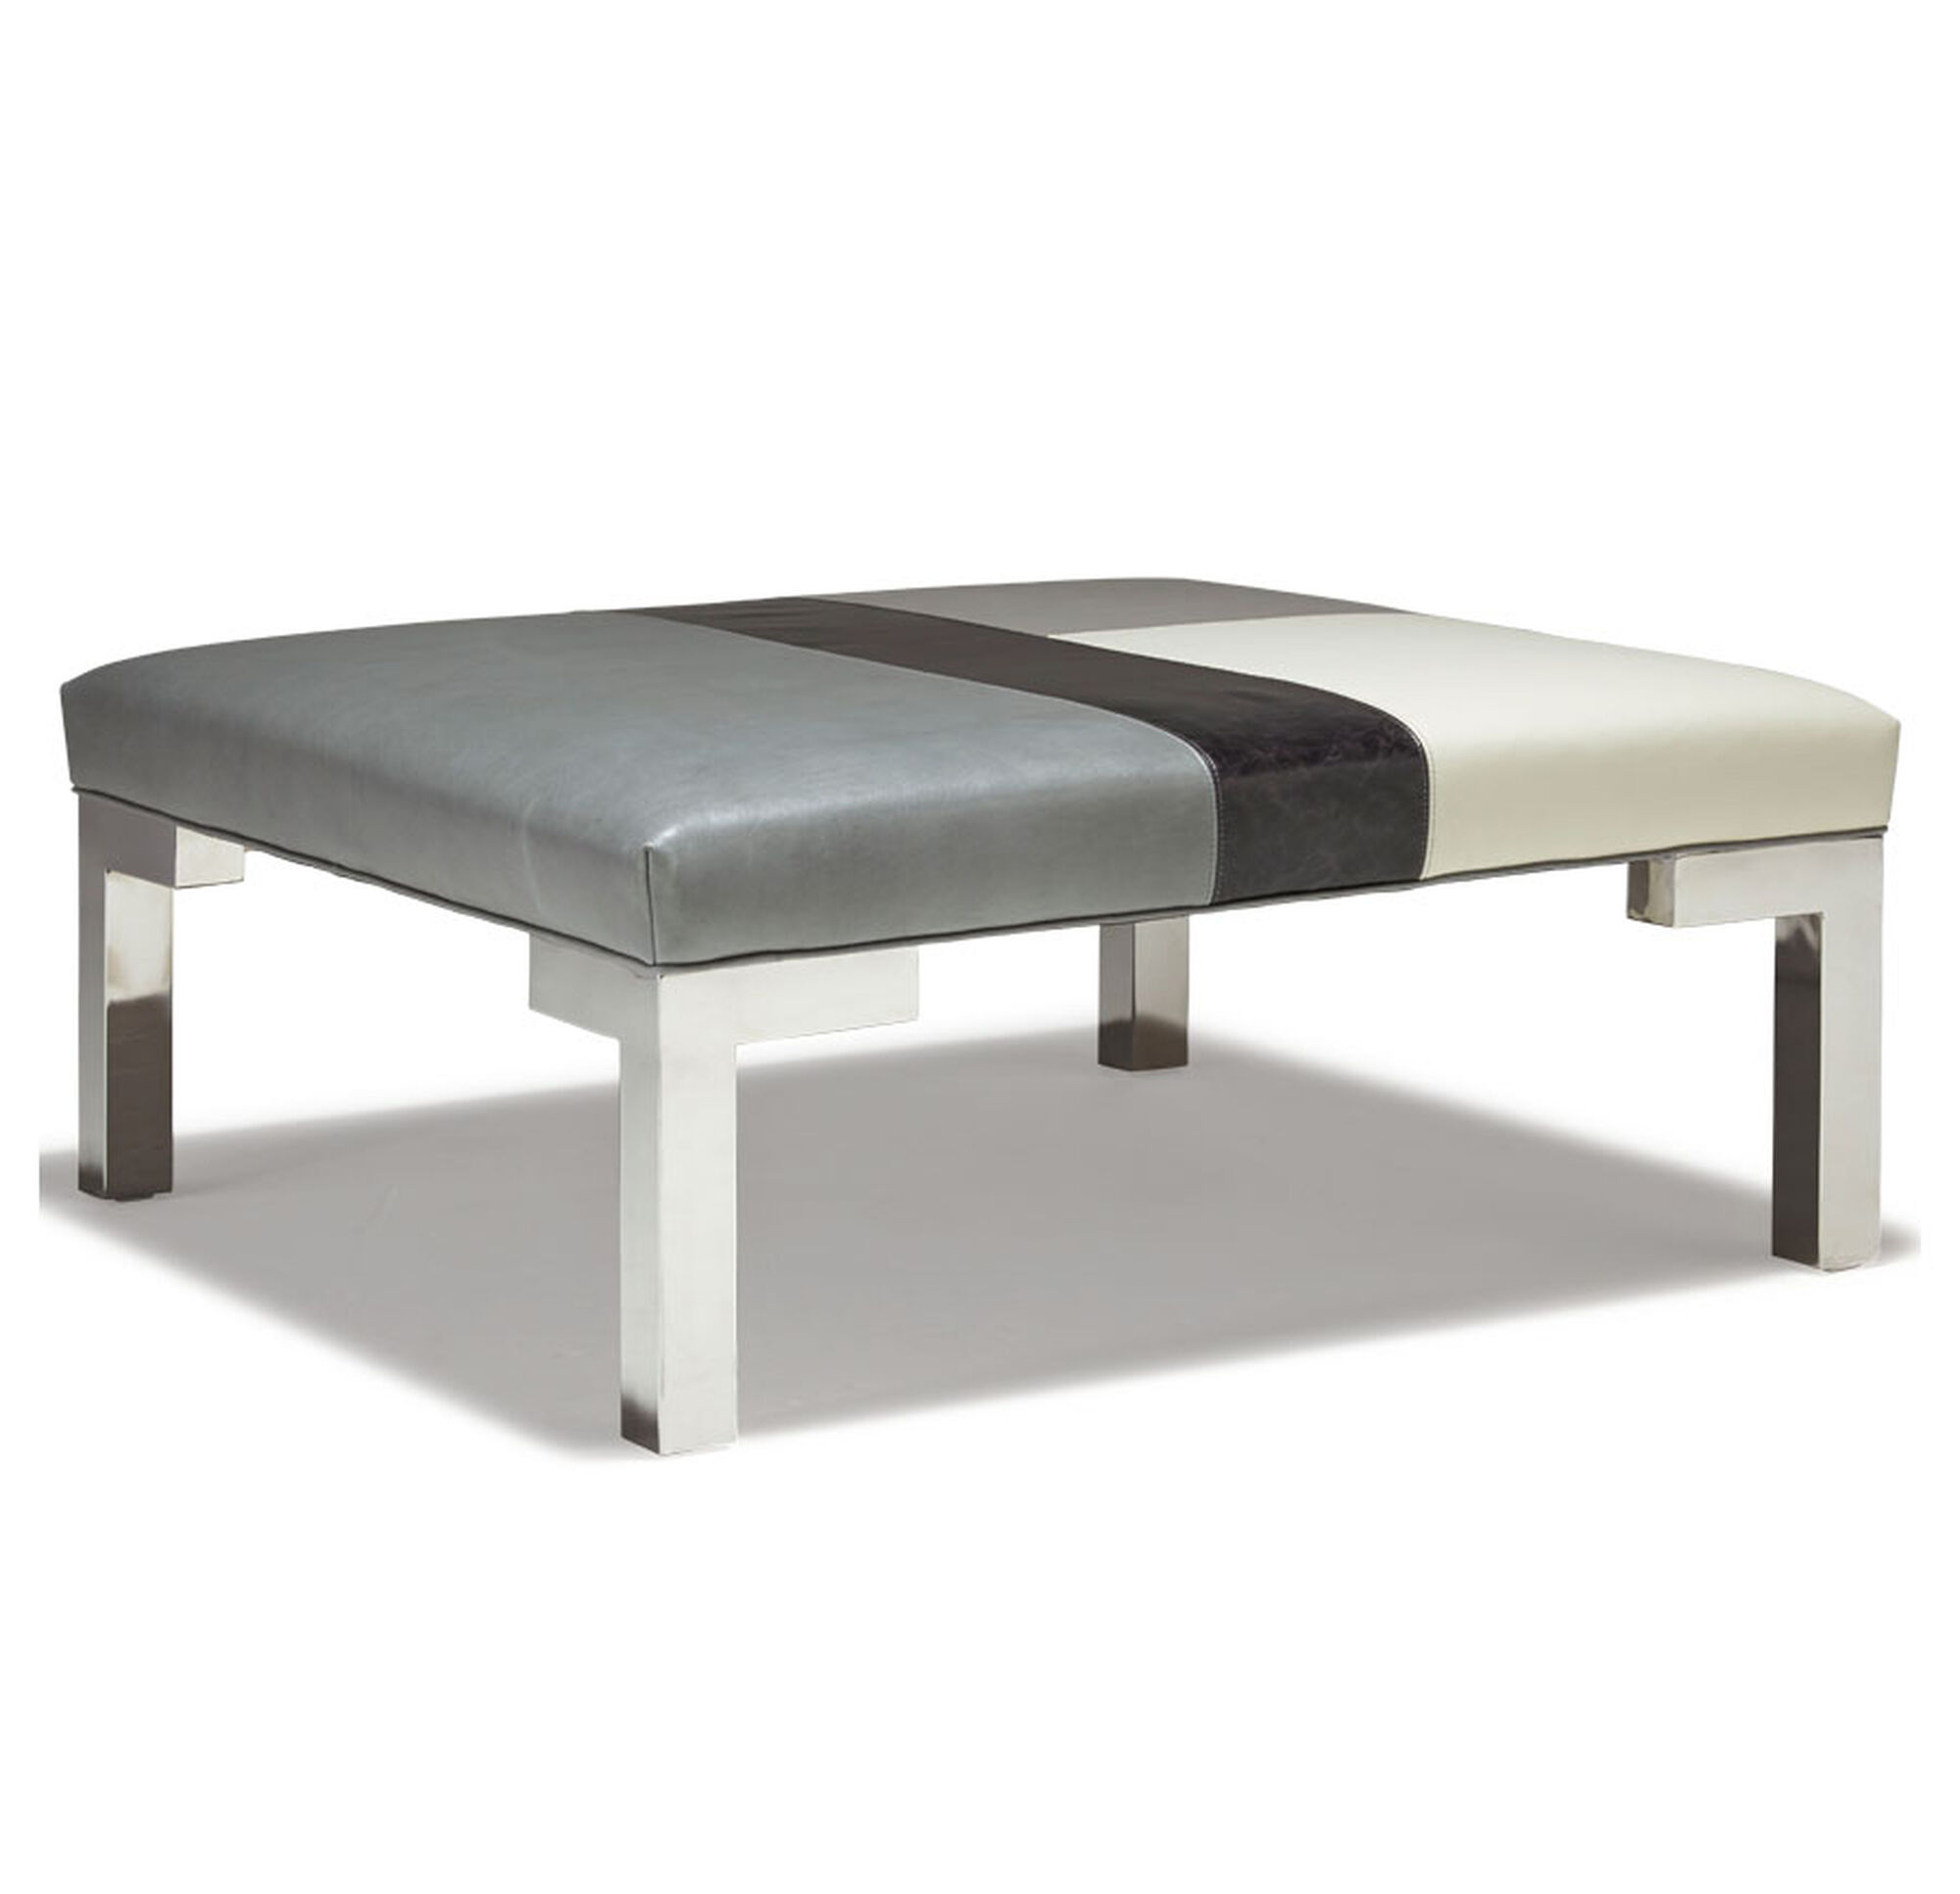 WINSTON LEATHER SQUARE MOSAIC OTTOMAN